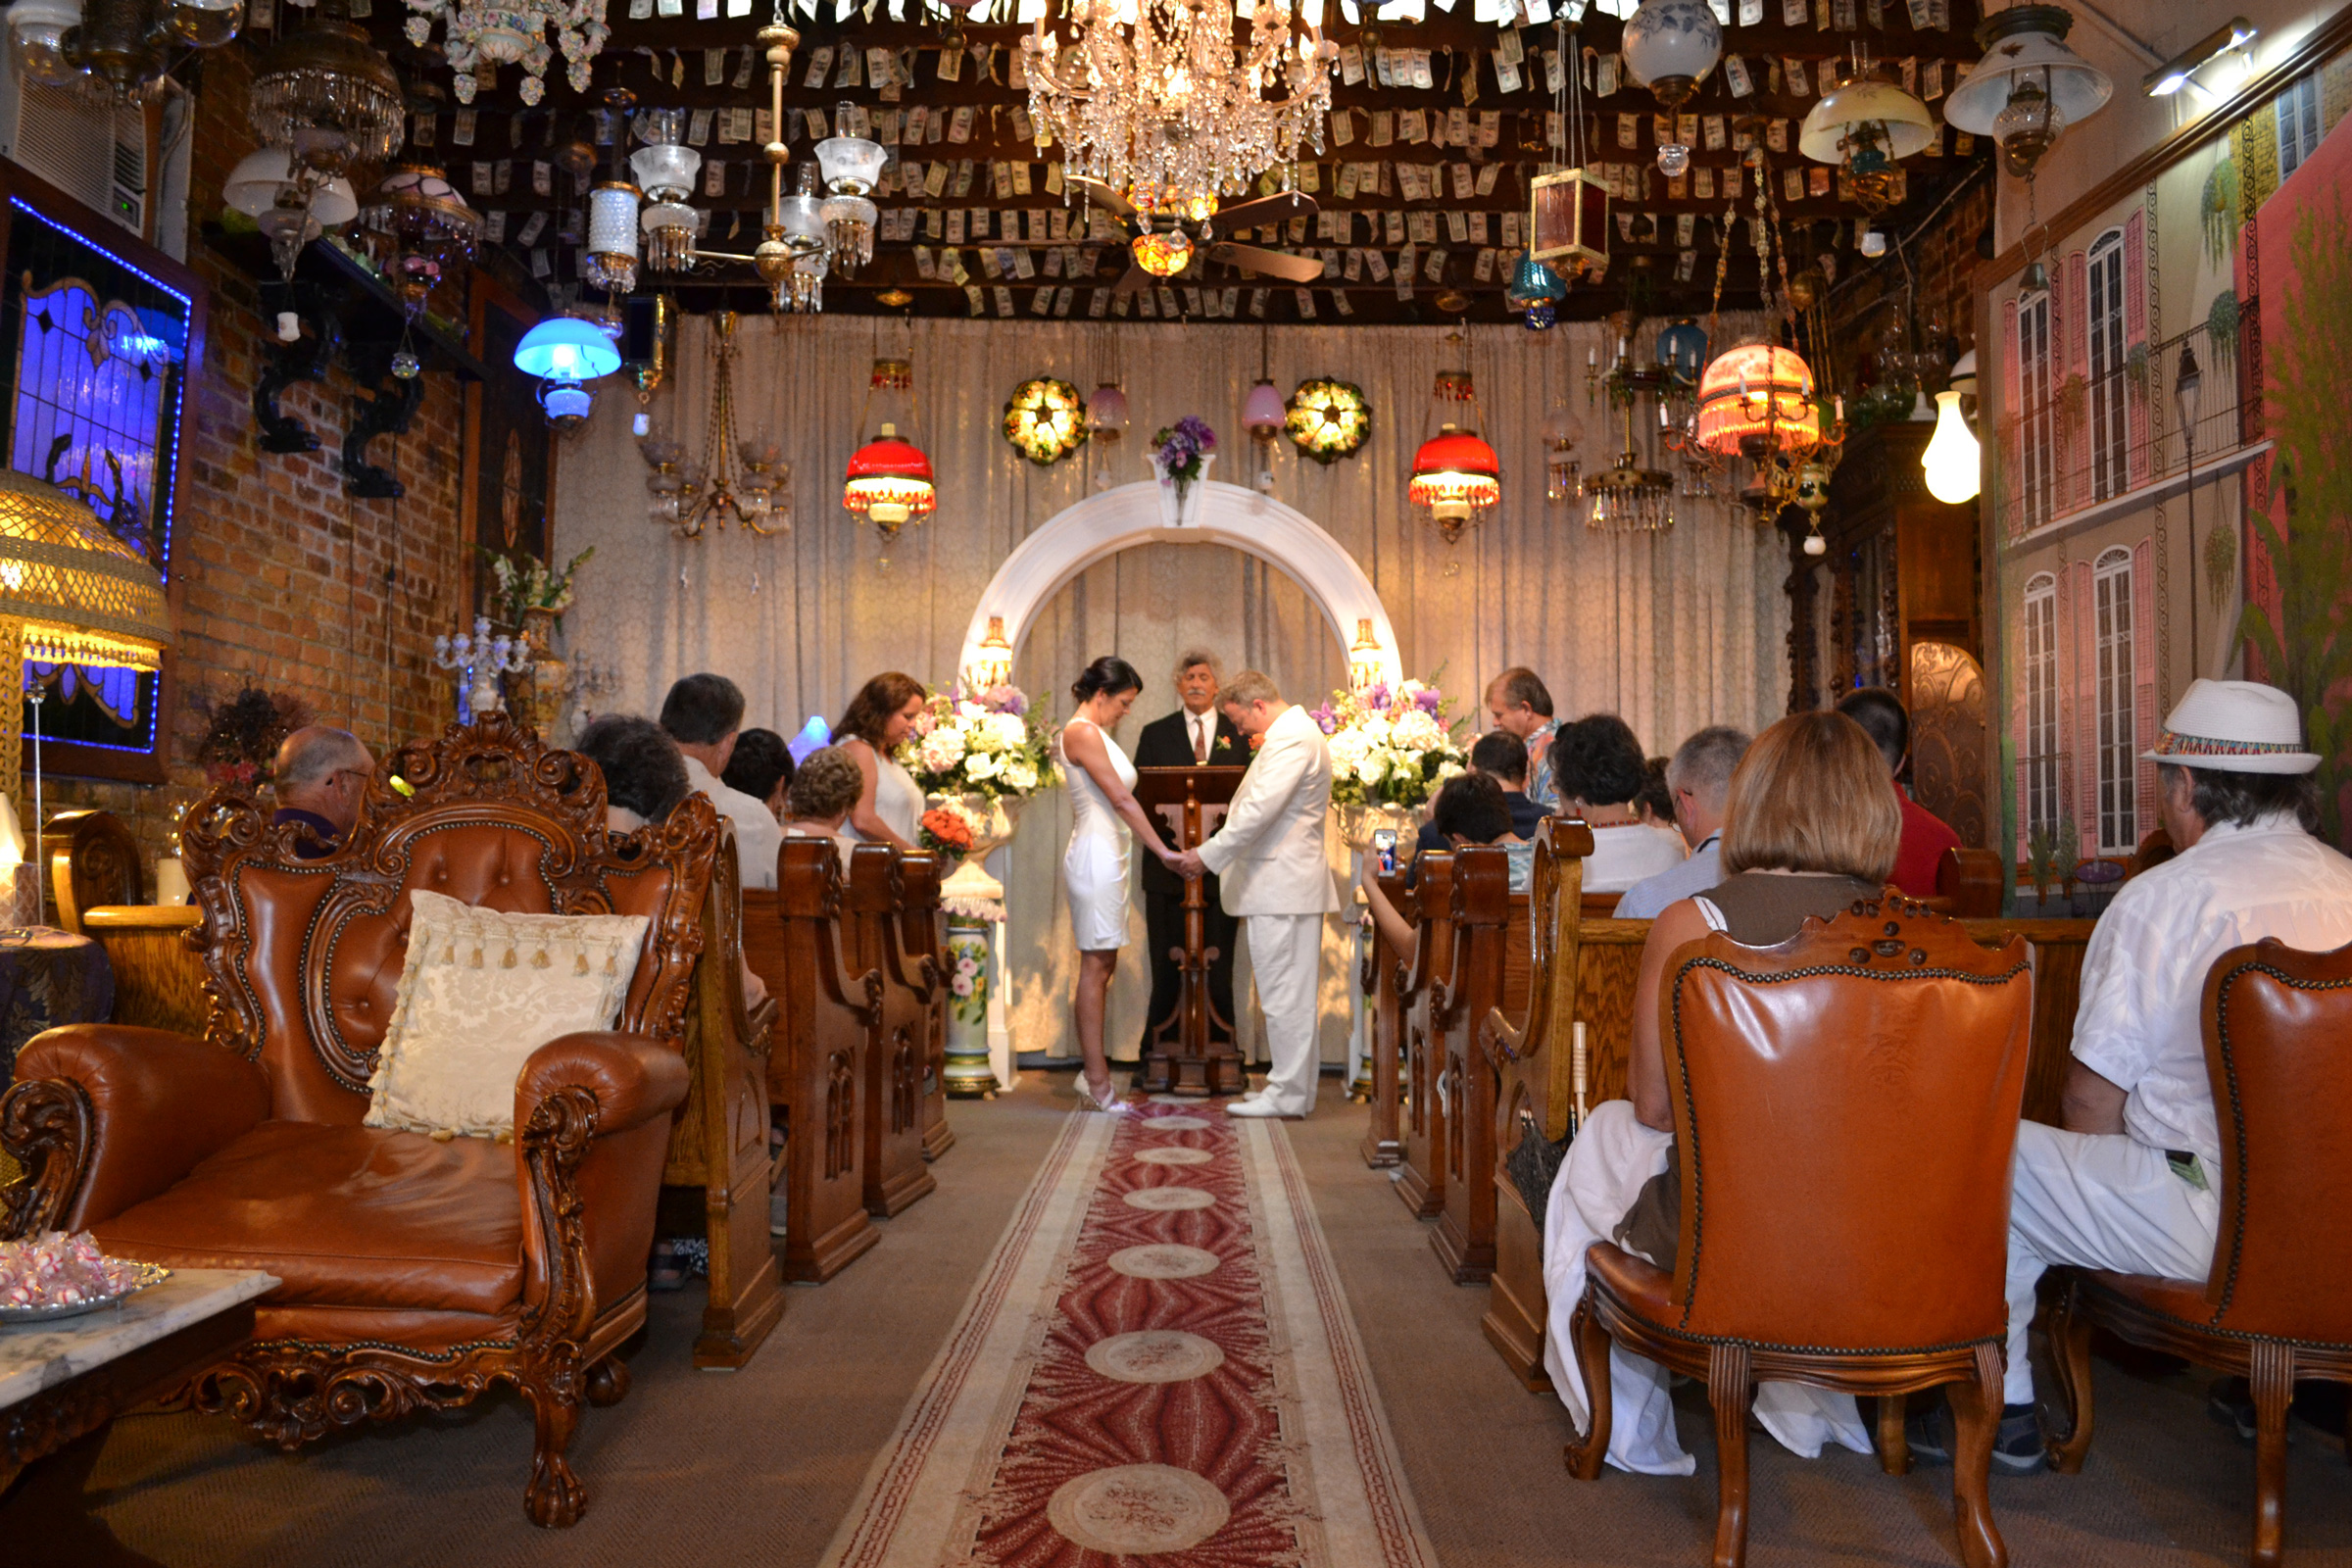 French Quarter Wedding Chapel Alter